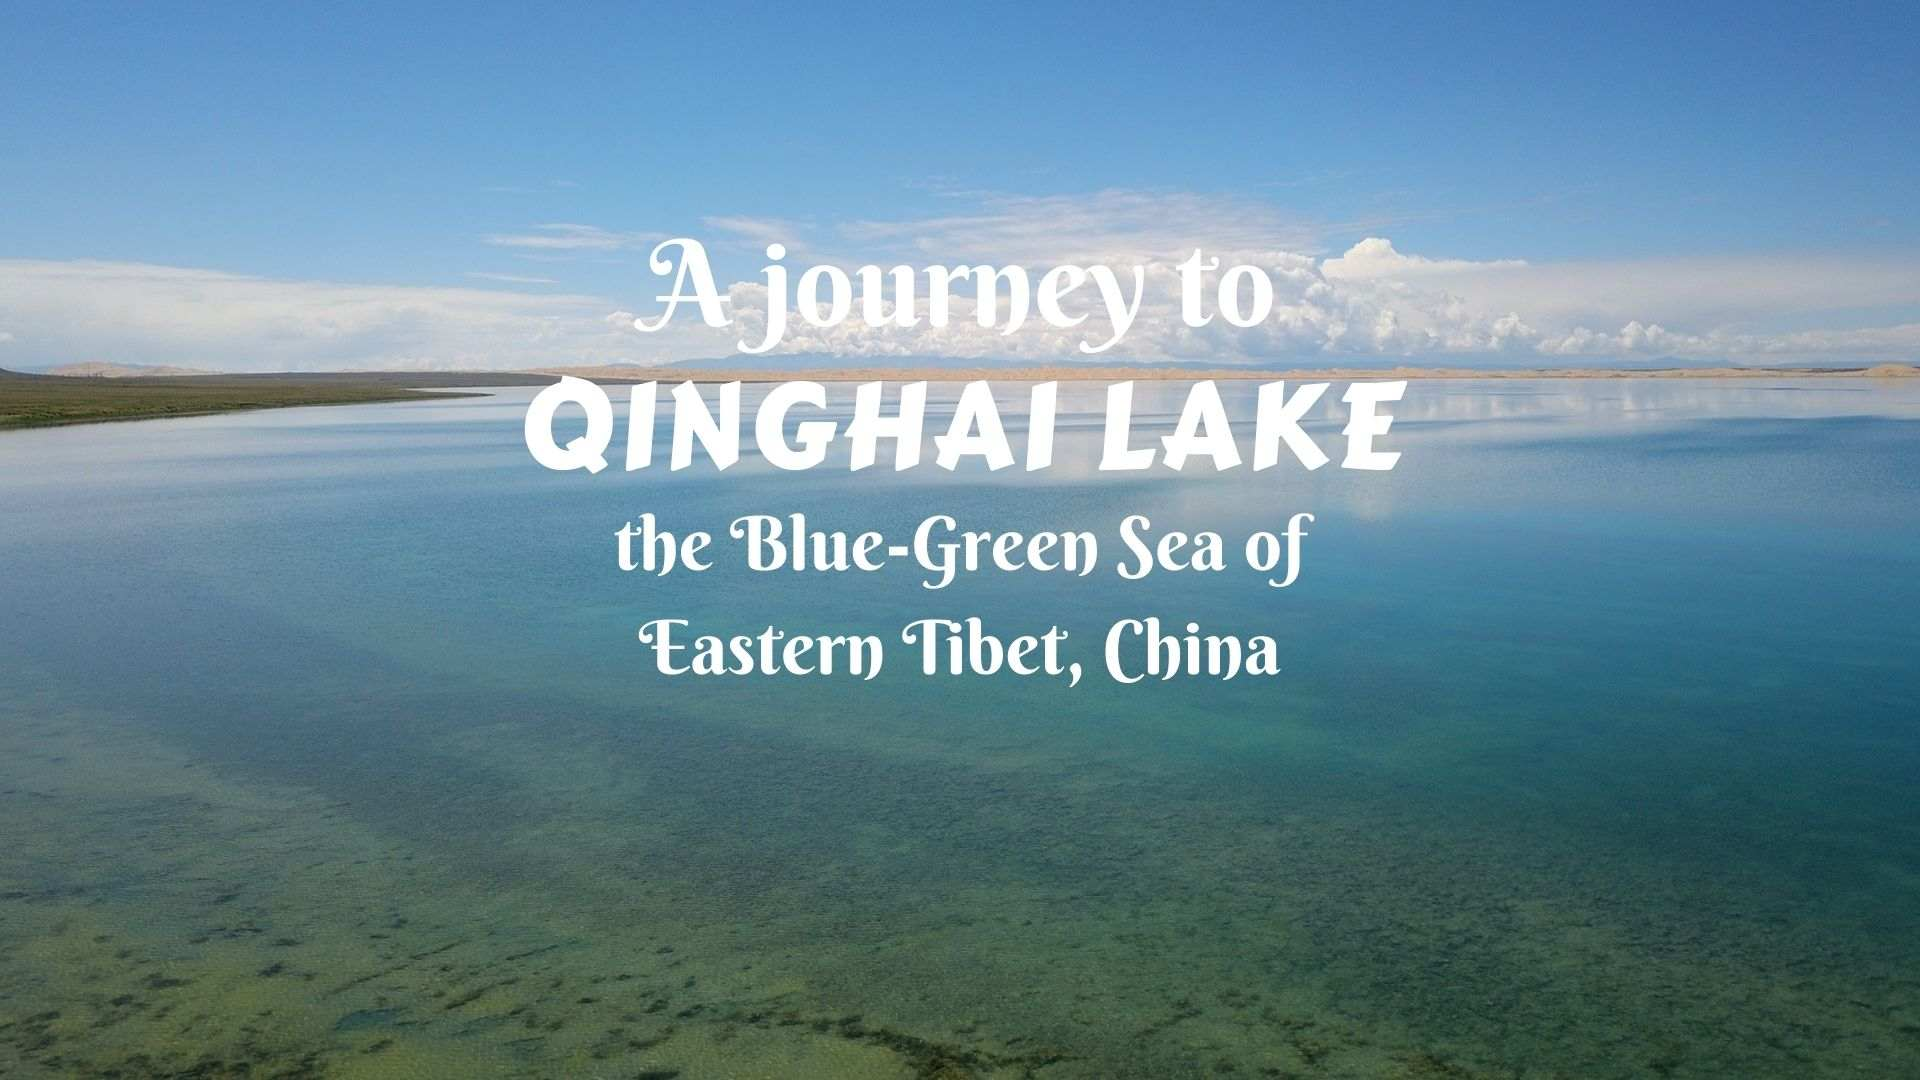 A journey to Qinghai Lake- the Blue-Green Sea of Eastern Tibet